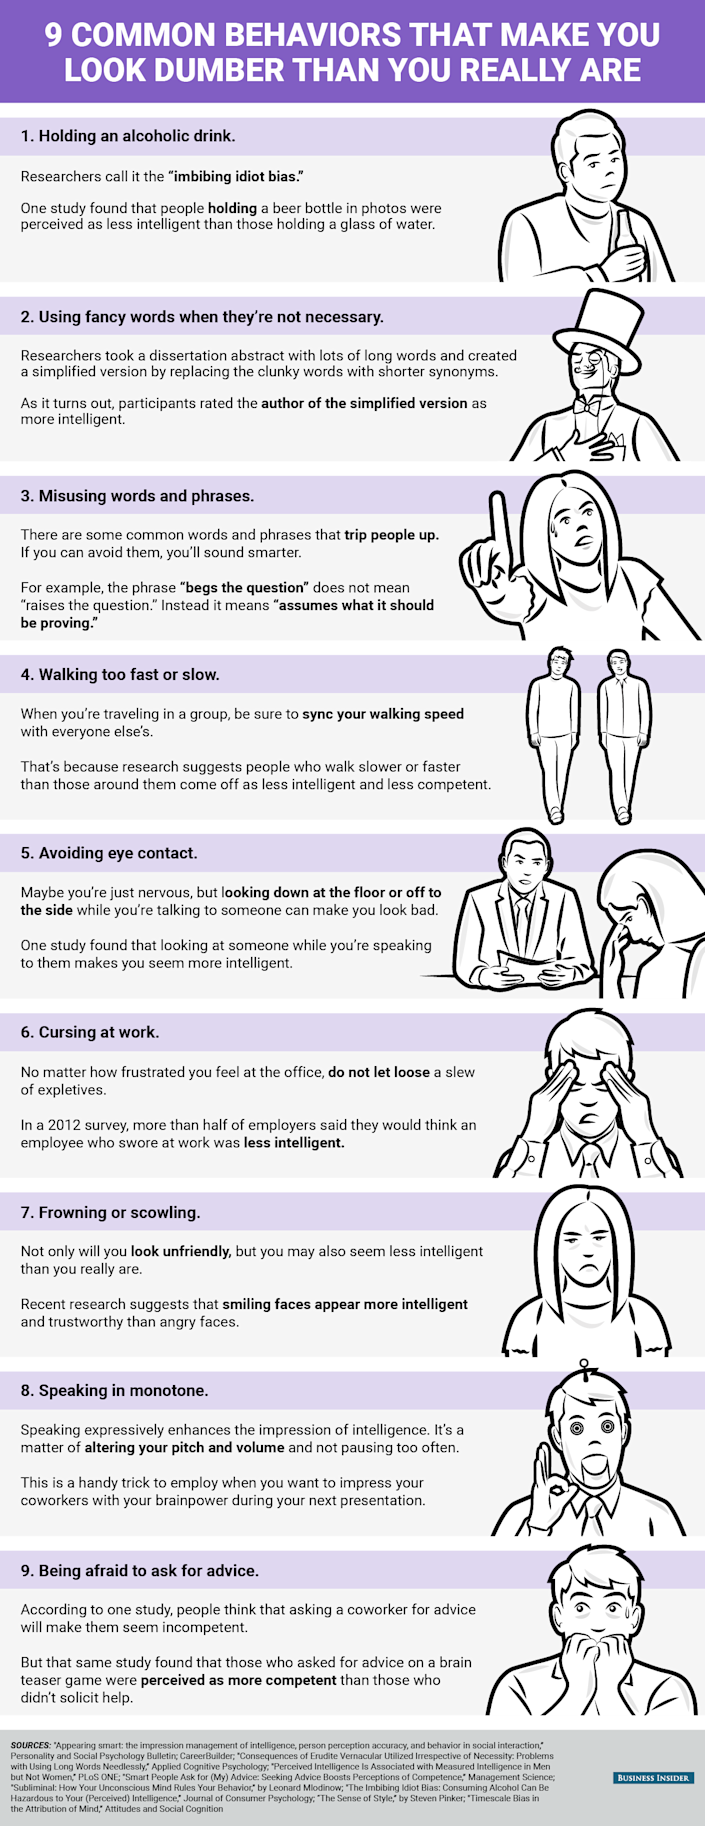 bi_graphics_9 common behaviors that make you look dumber than you really are